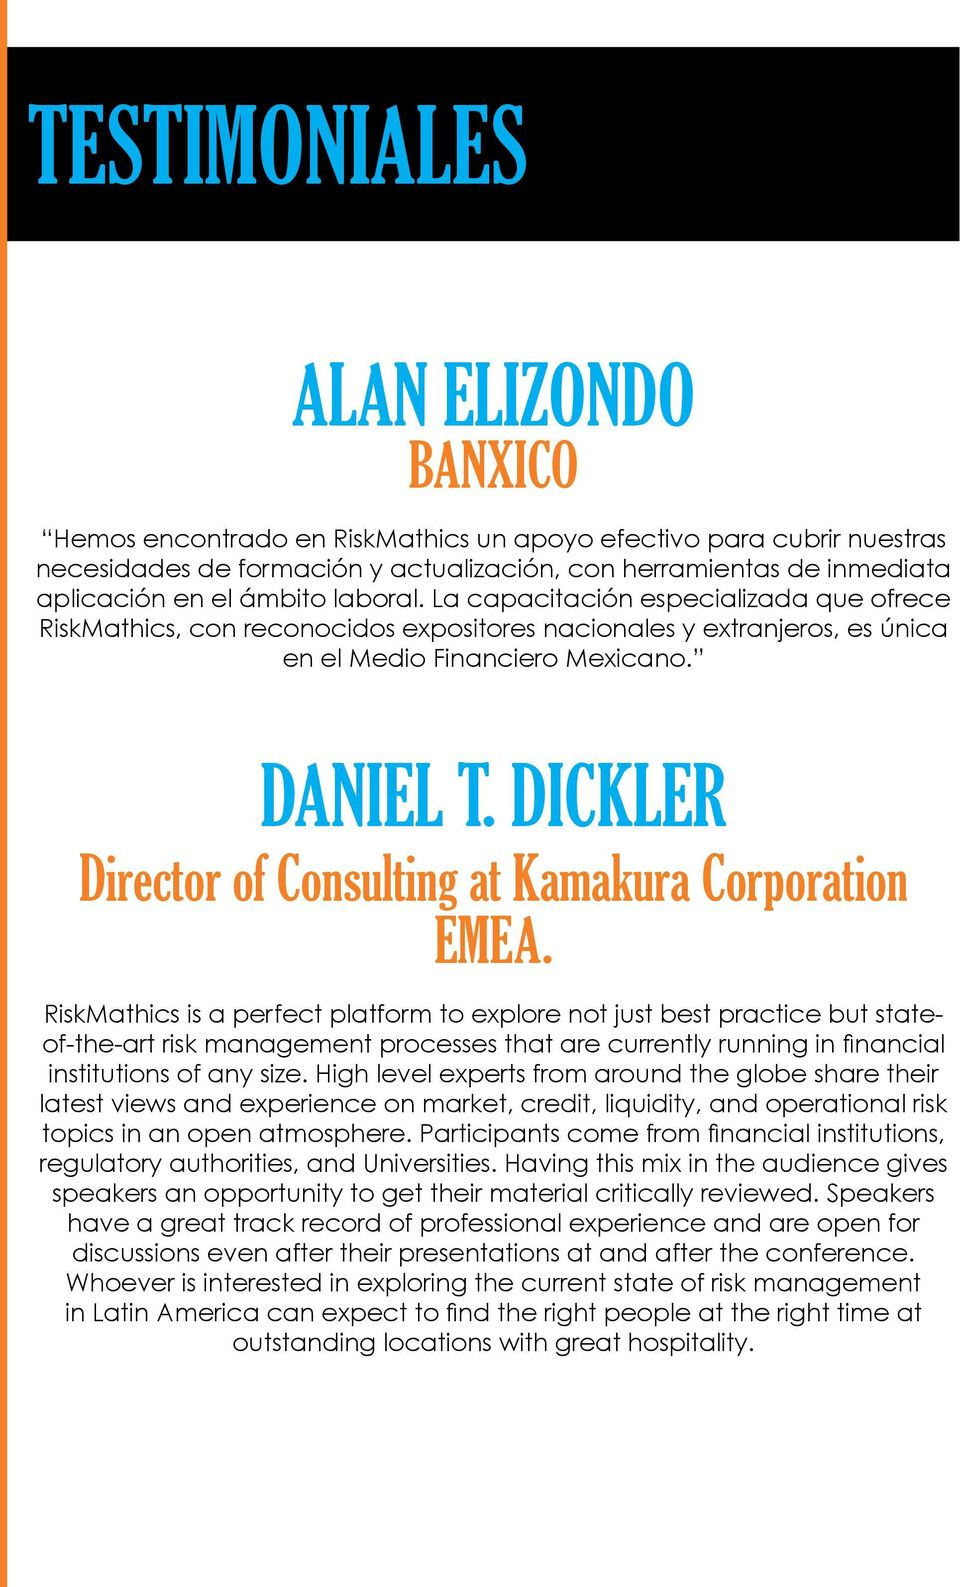 Dickler Director of Consulting at Kamakura Corporation EMEA.